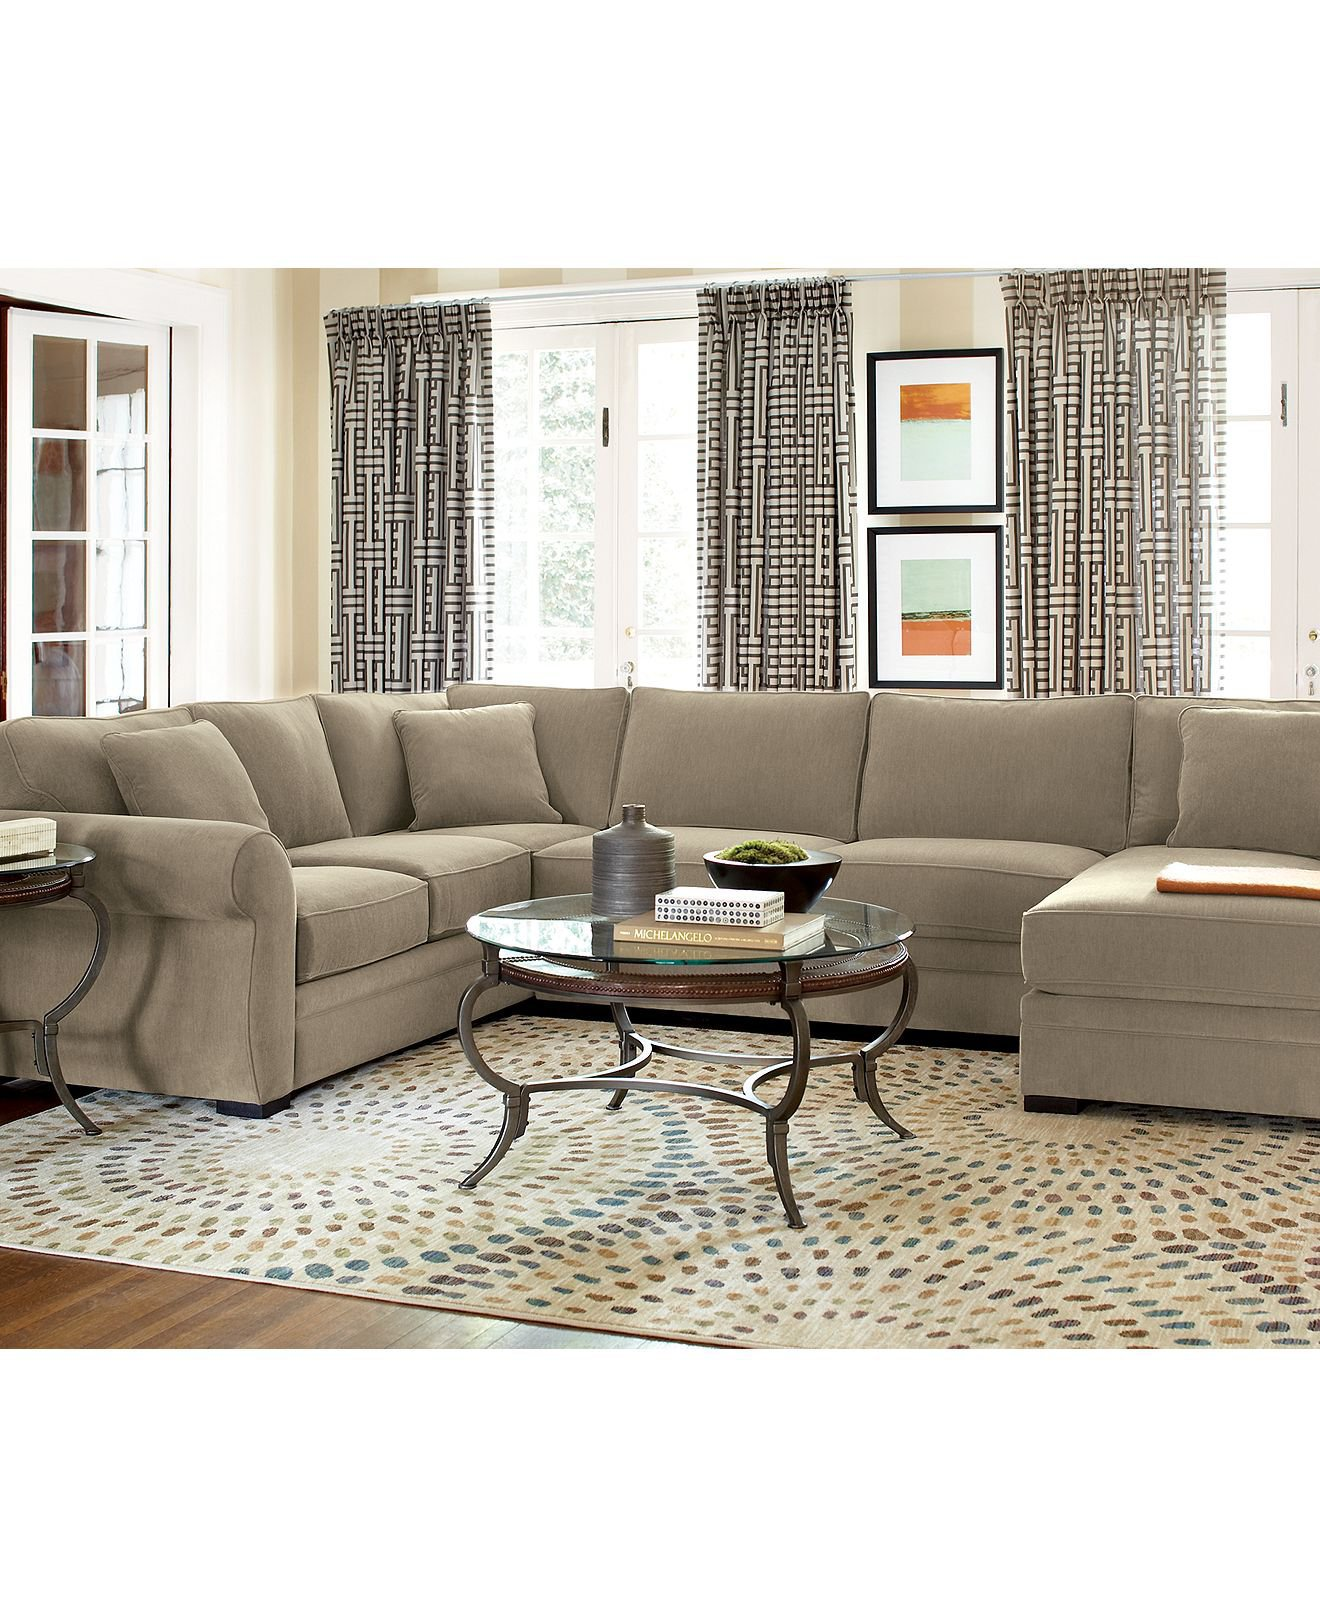 Devon Living Room Furniture Sets From Macy 39 S The House That